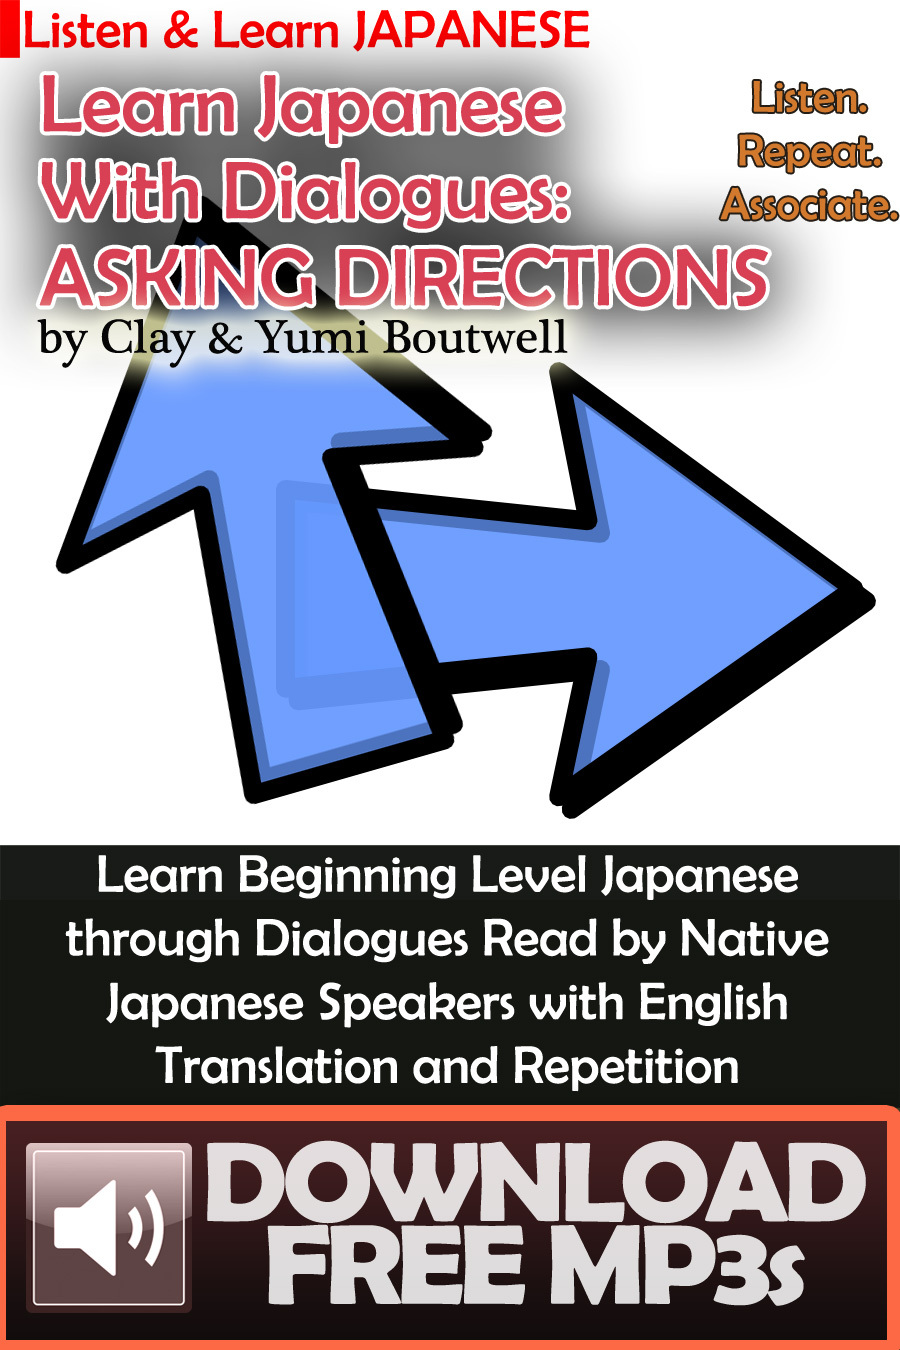 Learn Japanese with Dialogues: Asking Directions